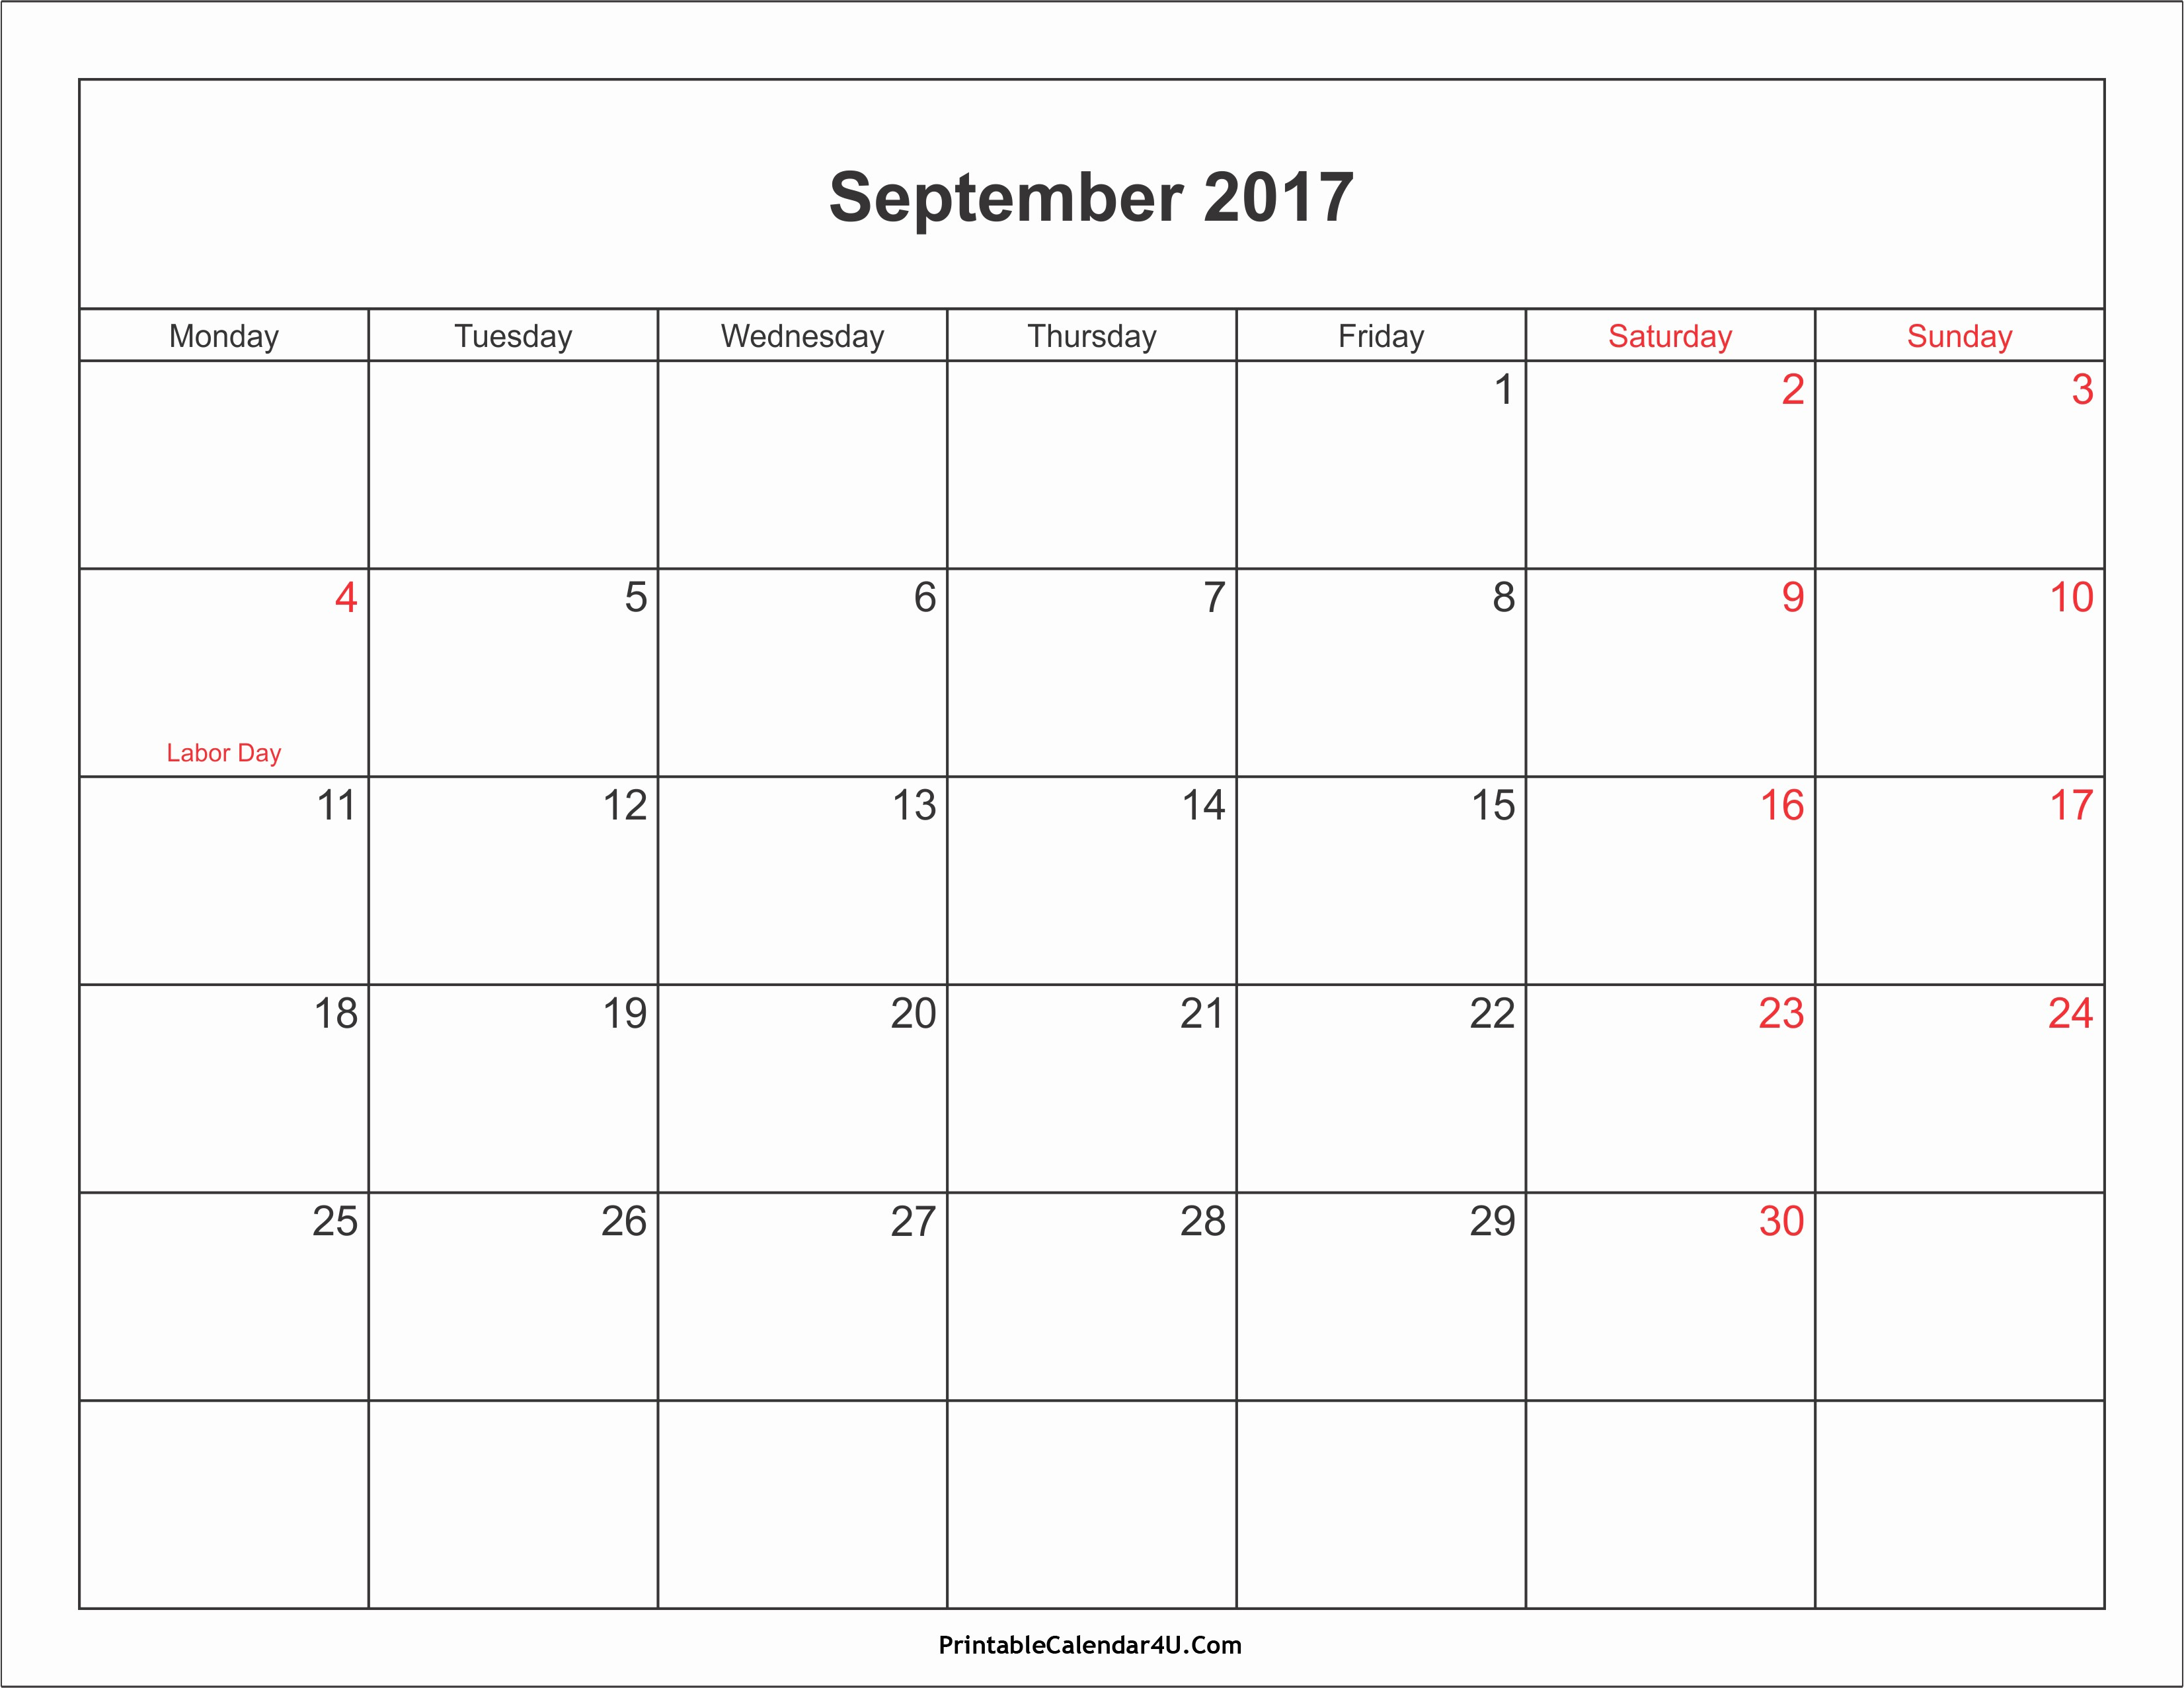 2017 Calendar with Holidays Template New September 2017 Calendar Printable with Holidays